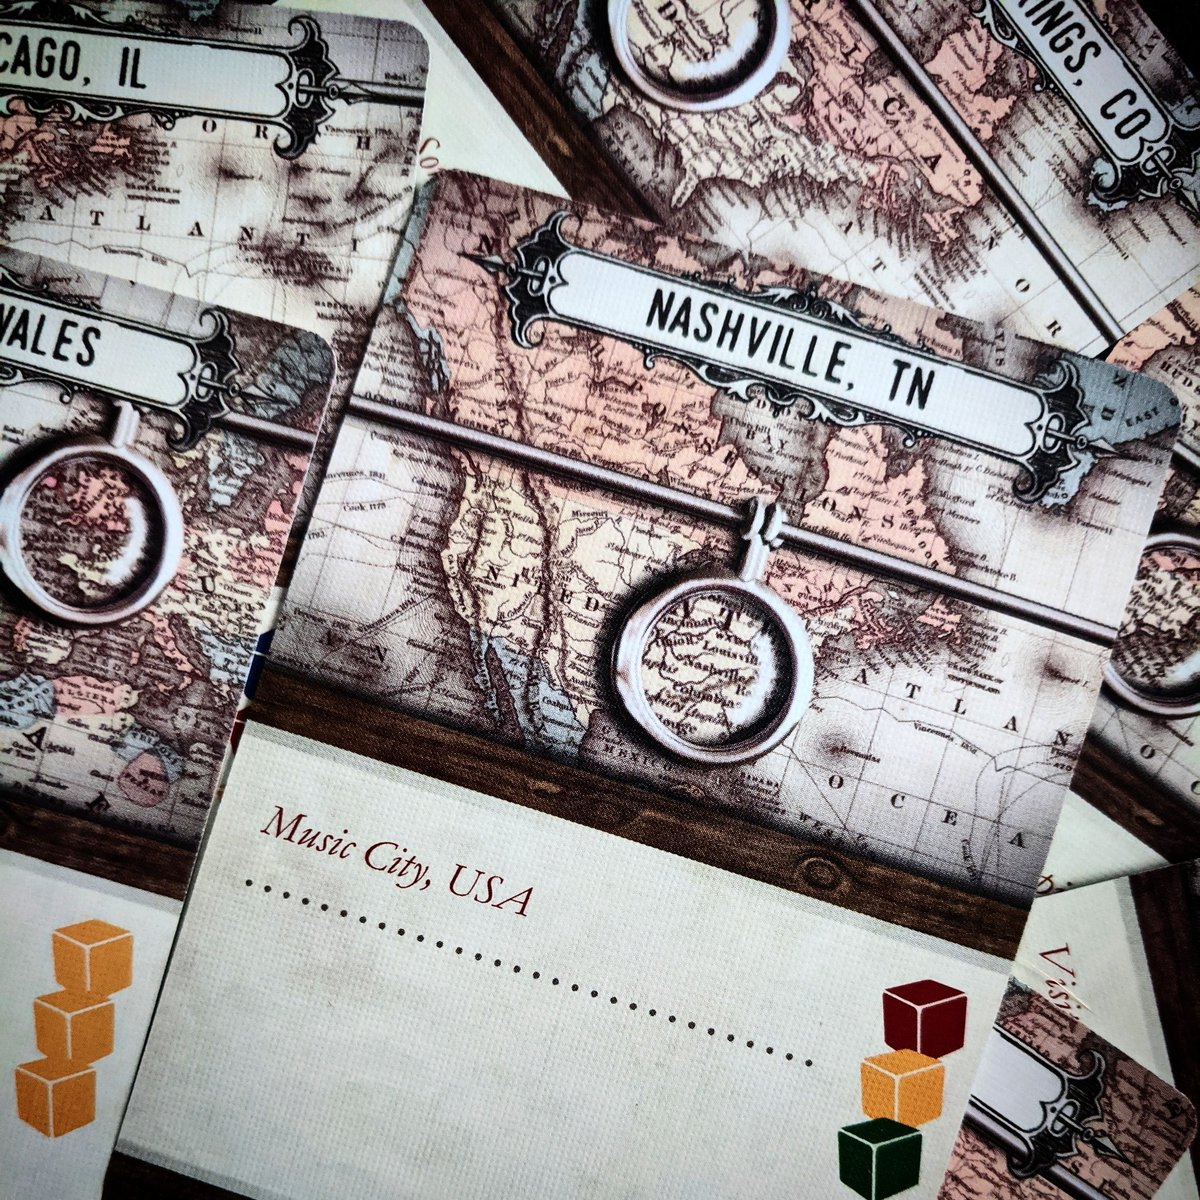 Nashville, TN! Is that where the next artifact will be? Find out in Warehouse 13: The Board Game now available on Amazon. #warehouse13boardgame #warehouse13 #infinitedreamsgaming #bgg #boardgamegeek #newgames #hiddentraitor #loyalagent #Kickstarter #newgames #dontstresspic.twitter.com/wllZcTXHX0